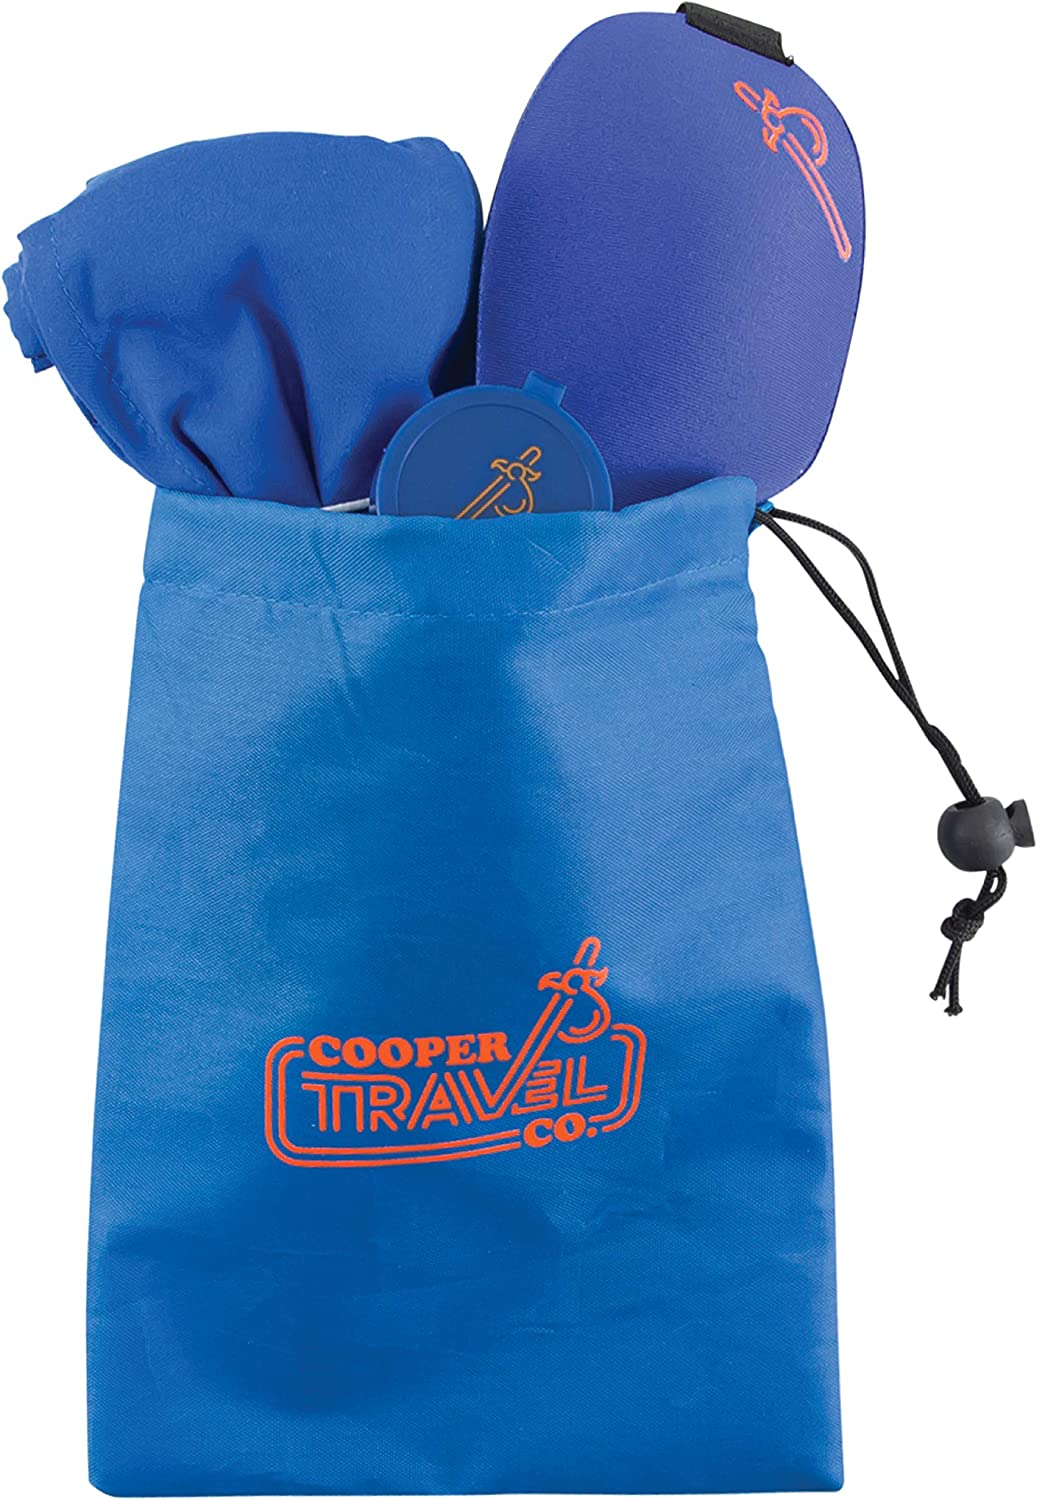 Cooper Travel Company Hostel Sleep Kit – Includes Personal Hygienic Pillowcase, 3-D Light Blocking Sleep Mask and Earplugs with Case. Designed for Sleeping in Hostels, Airbnb and Couchsurfing